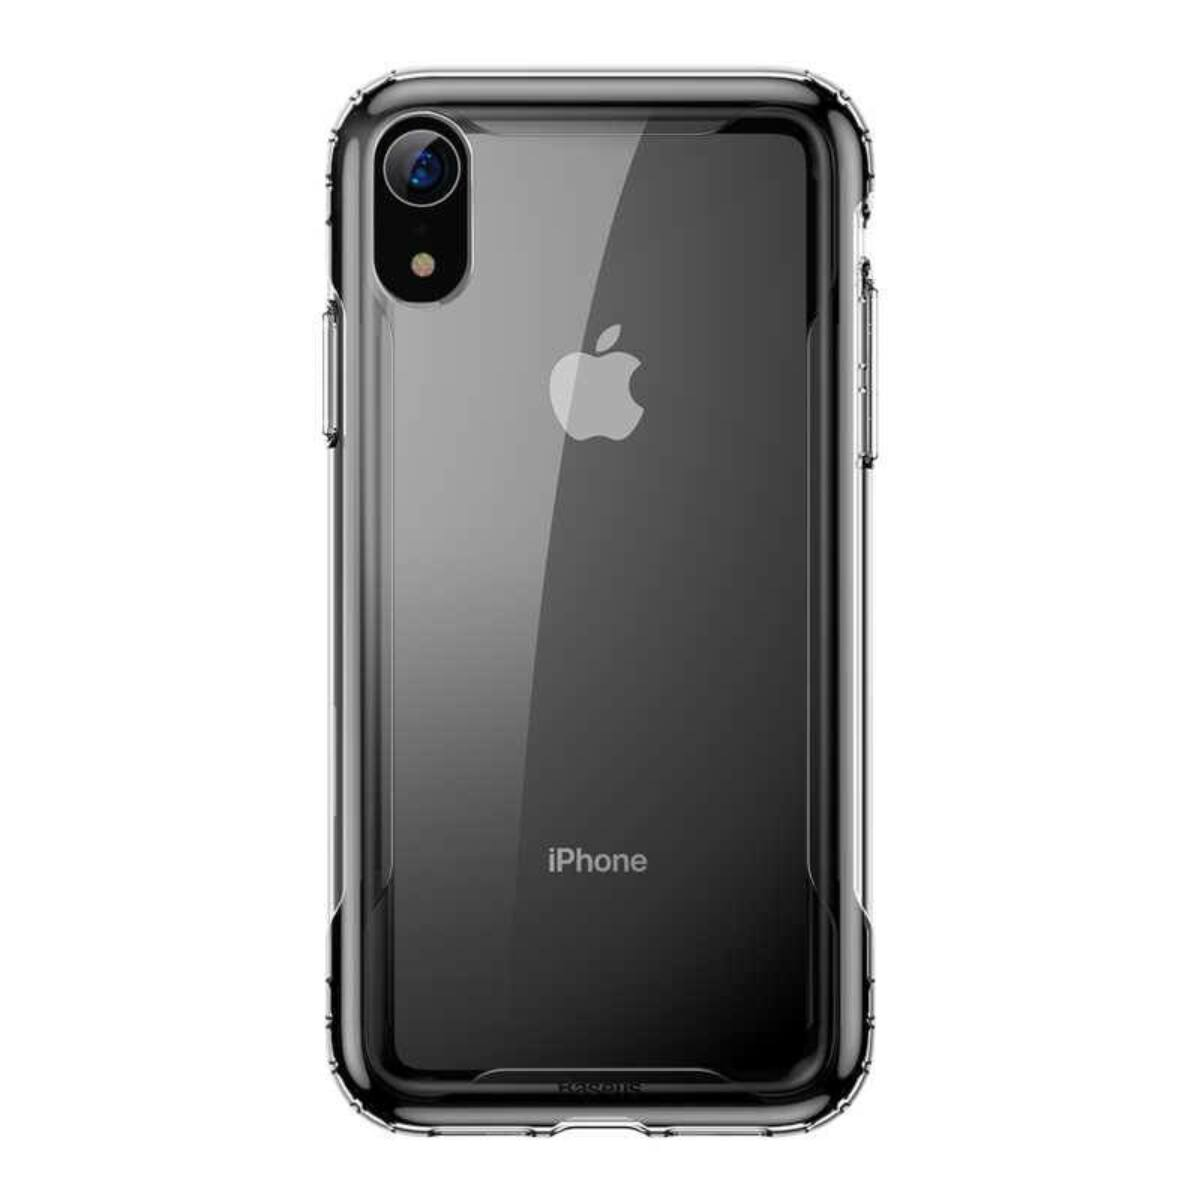 Baseus iPhone XR tok, Armor, fekete (WIAPIPH61-YJ01)